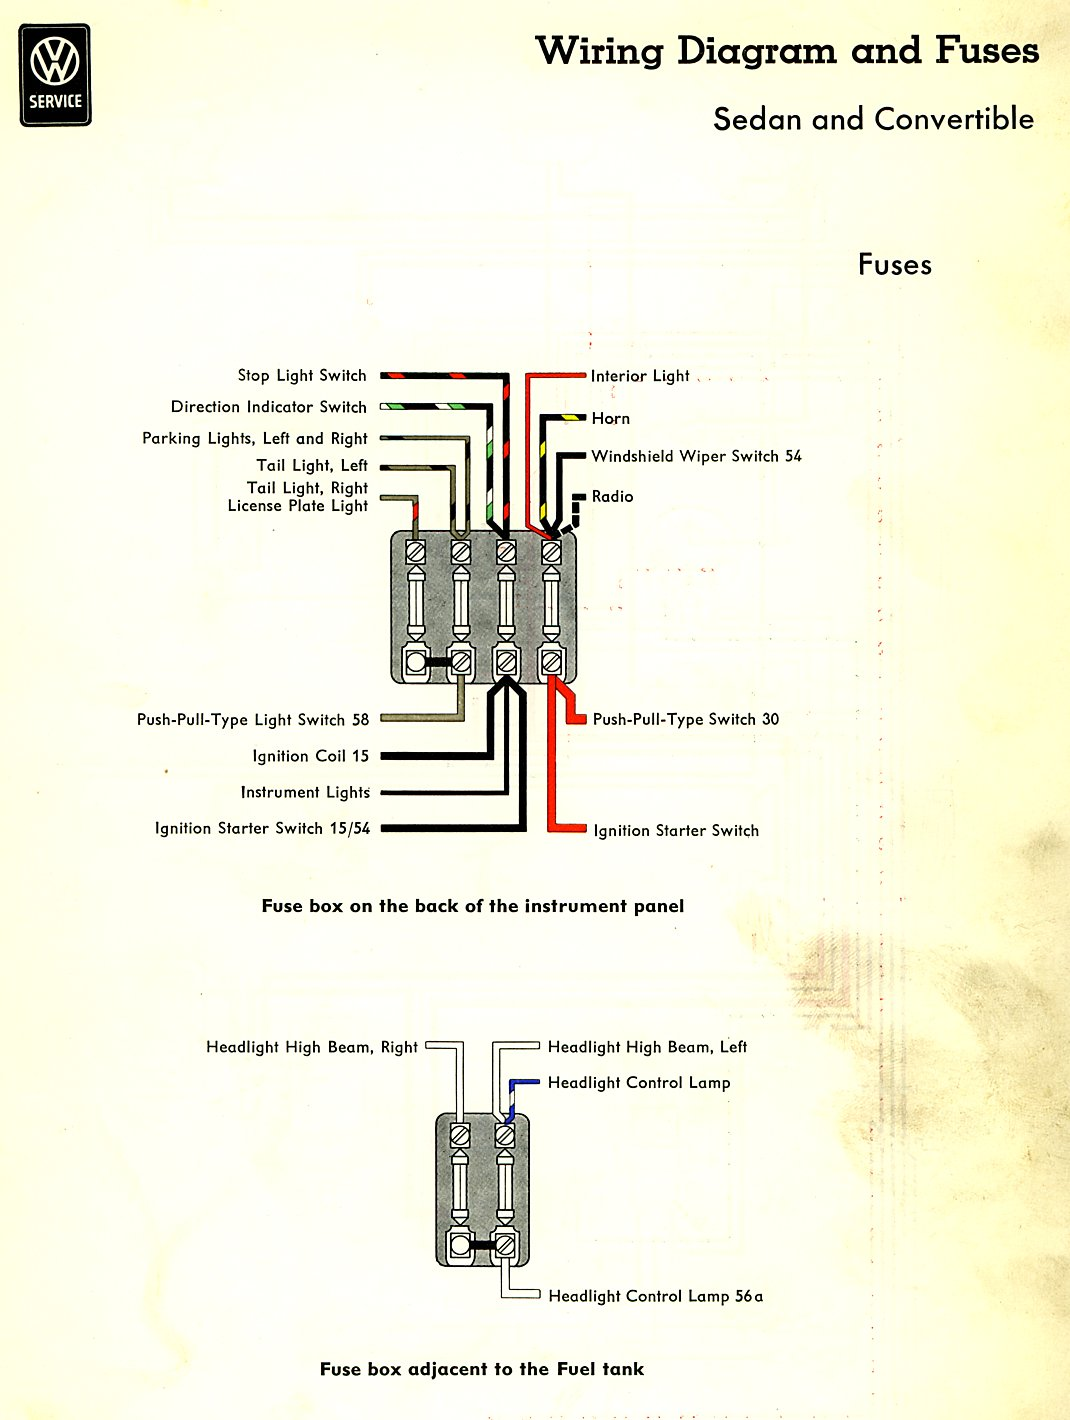 1967 Vw Bug Ignition Coil Wiring Diagram Car Diagrams Beetle Engine Thesamba Com Type 1 Rh 1968 Switch